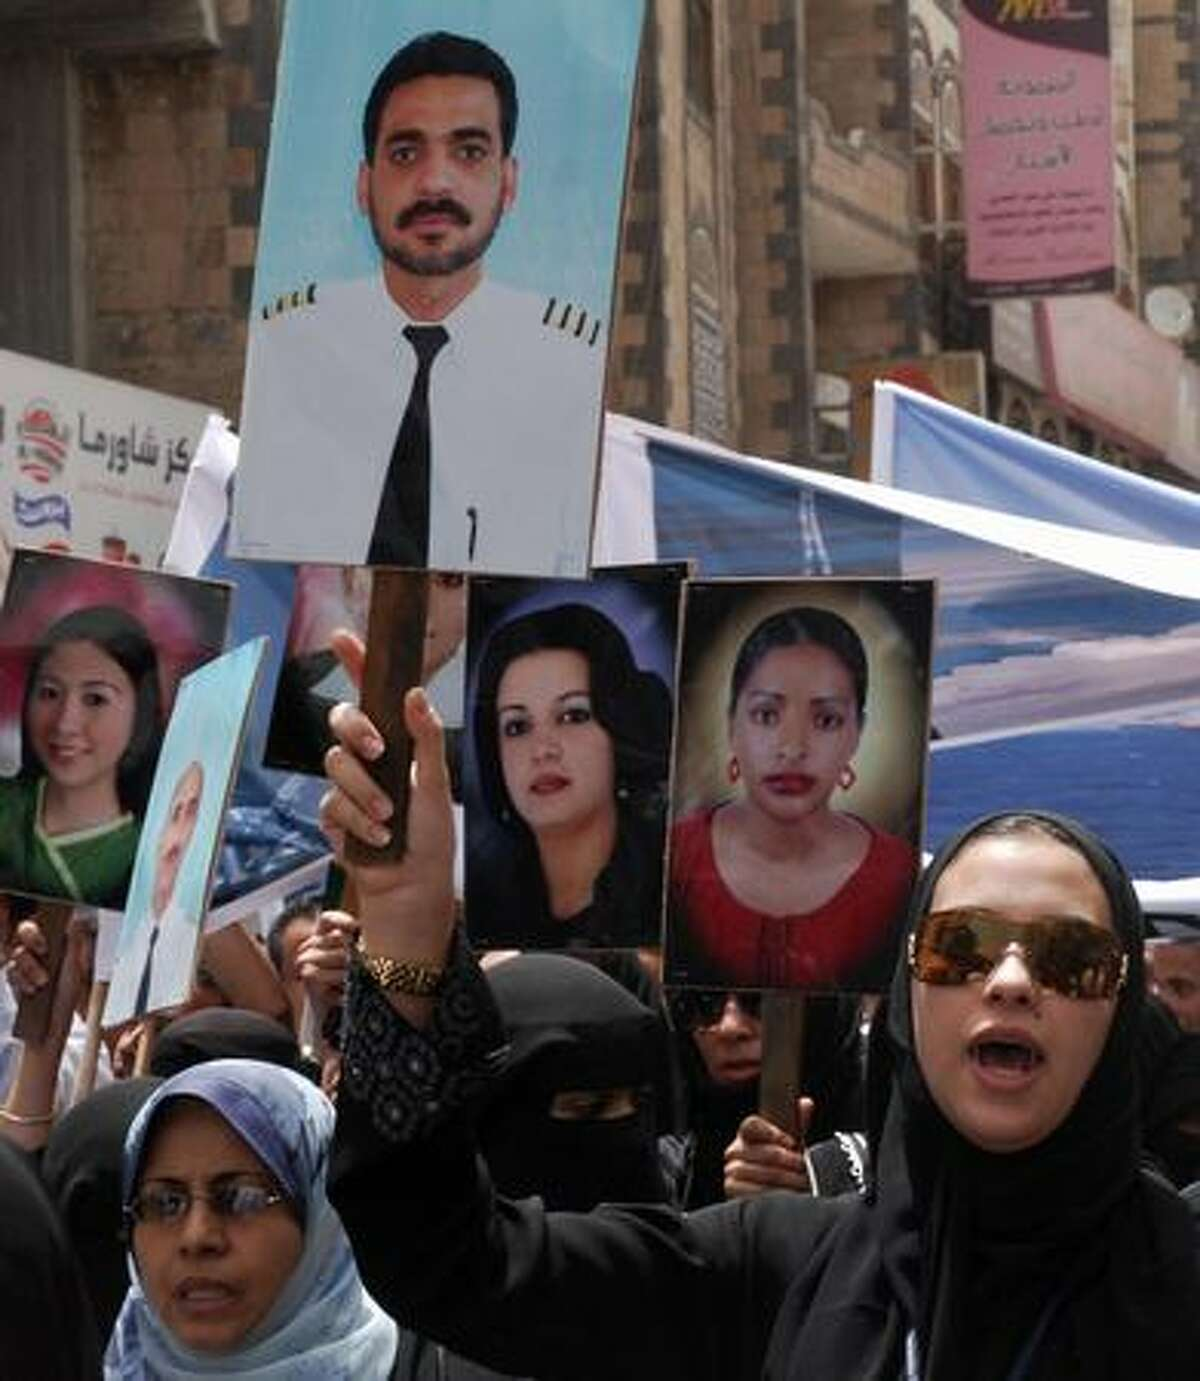 An employee of Yemenia airlines holds a picture of Khaled Hajeb, pilot of the national carrier's Airbus A310 that crashed last week off Comoros Islands in the Indian Ocean, during a protest in front of the French embassy on Sanaa. Hundreds of Yemenia airline employees demonstrated outside the French embassy in Sanaa protesting against French